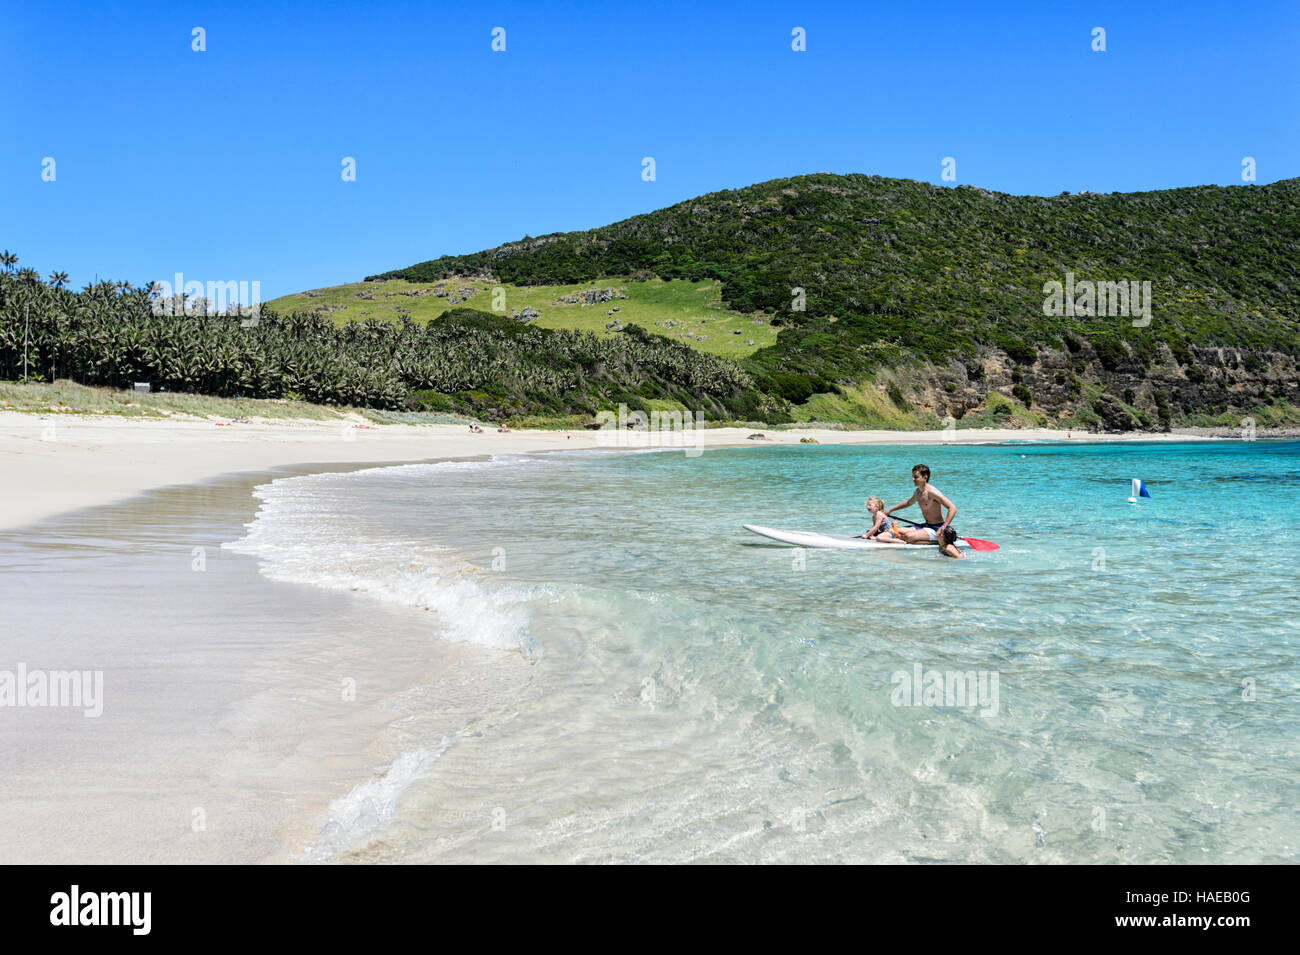 Jeune garçon et deux filles paddleboarding à Ned's Beach, Lord Howe Island, New South Wales, NSW, Photo Stock